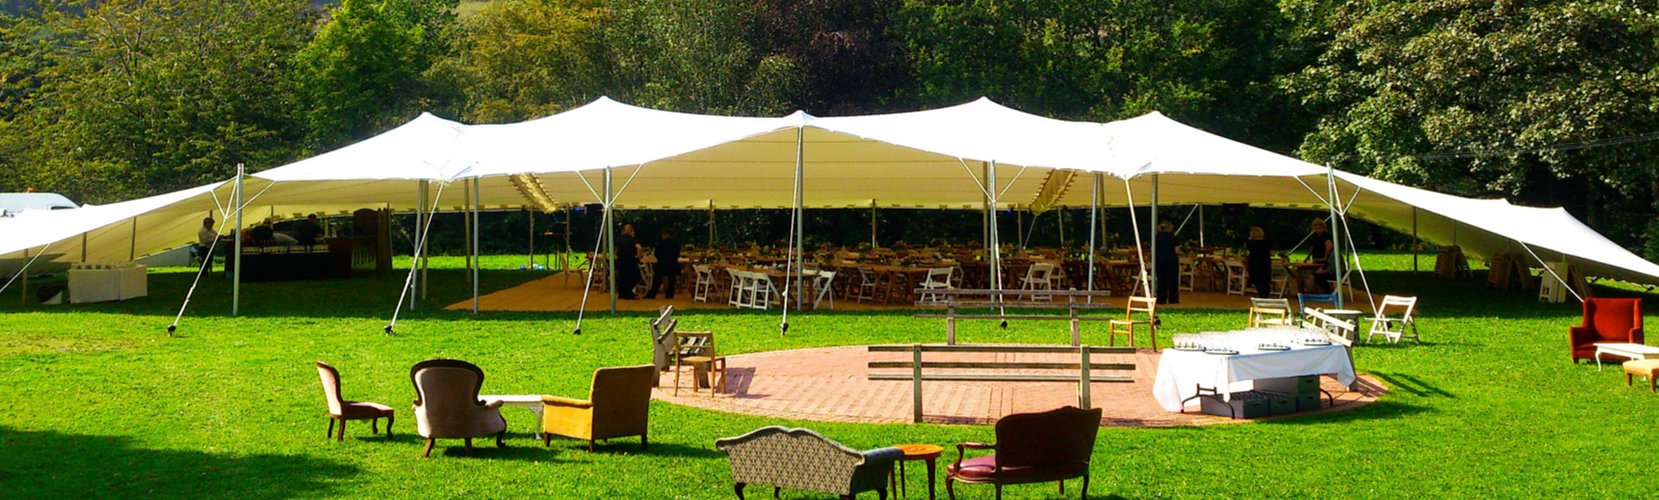 Royal Stretch Tents Africa & Tents for Sale Royal Tent   Best Tent Manufacturer Of Tents South ...